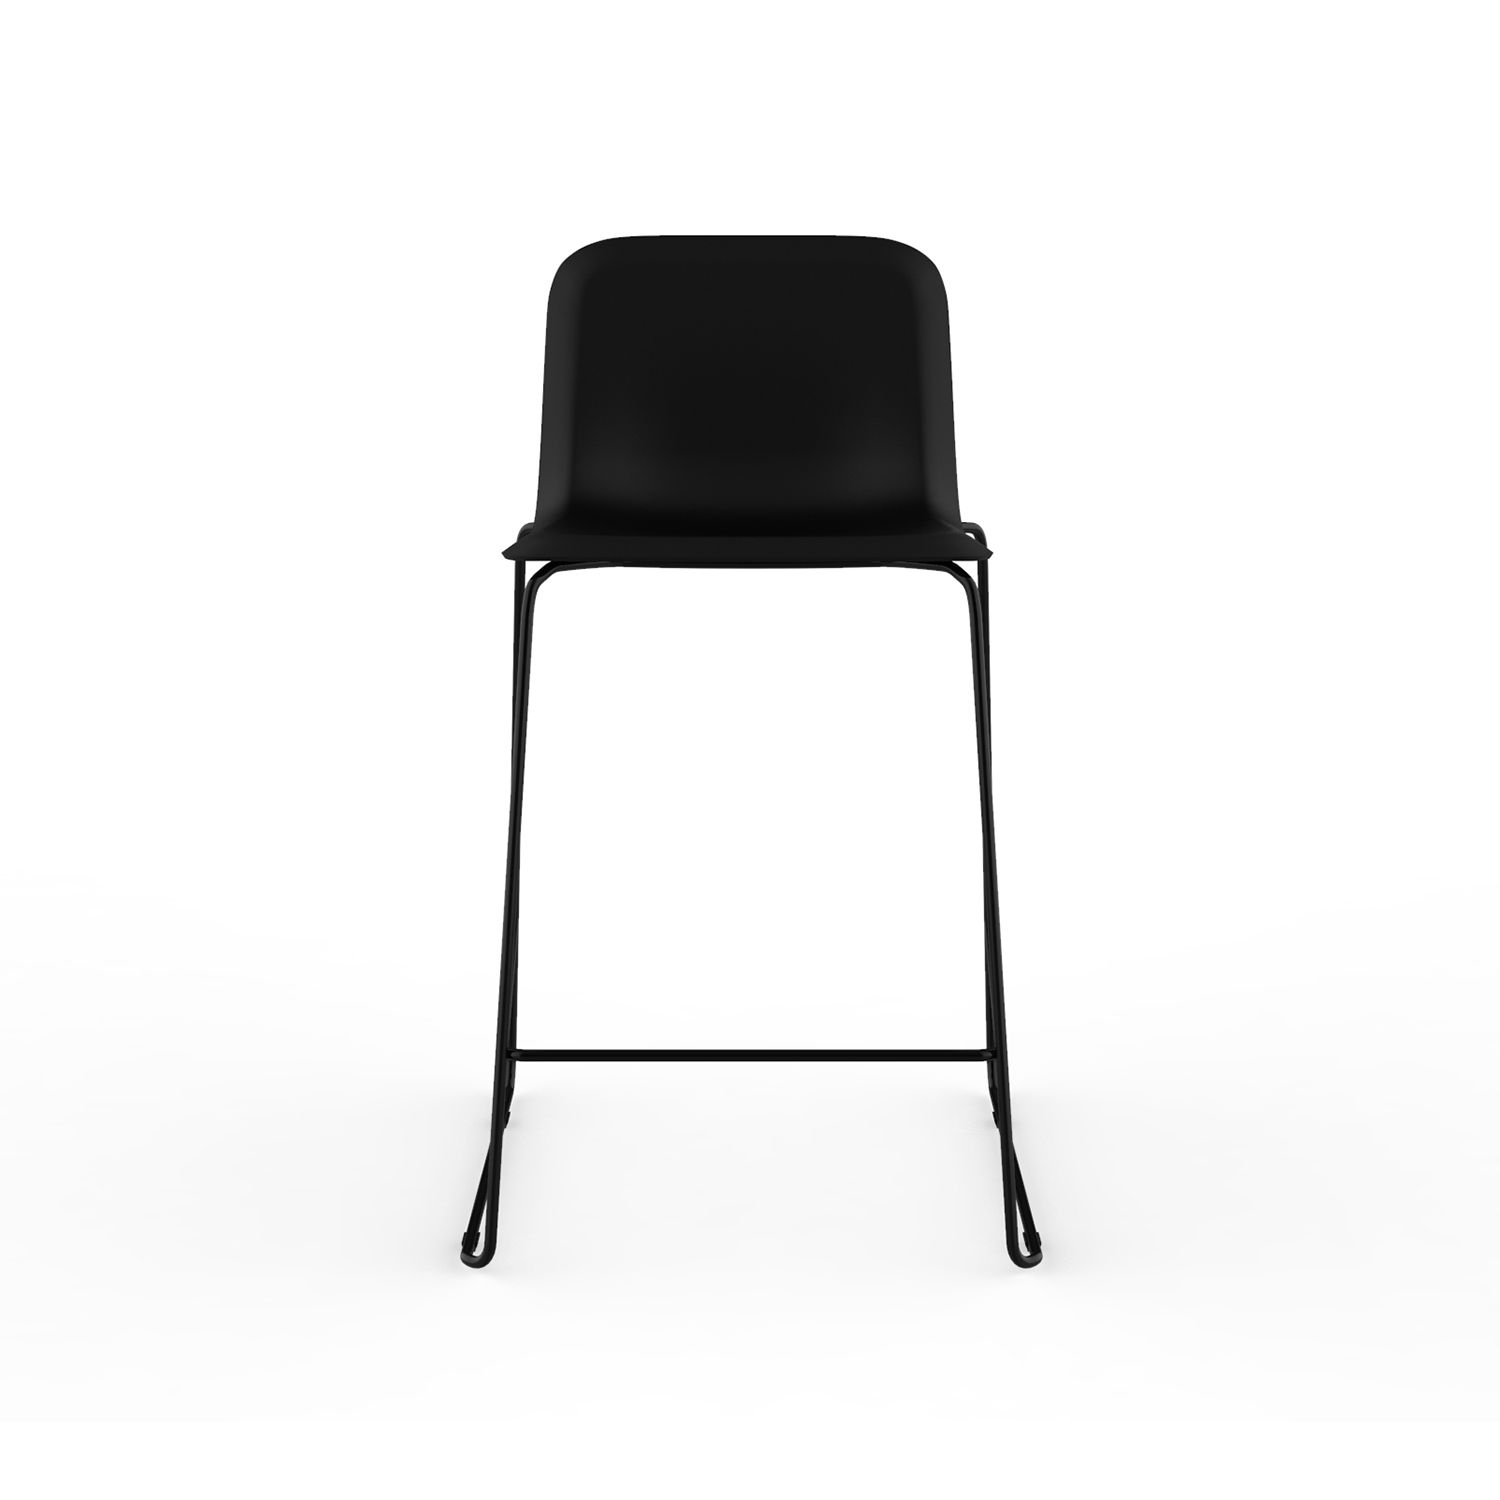 this 641 barstool